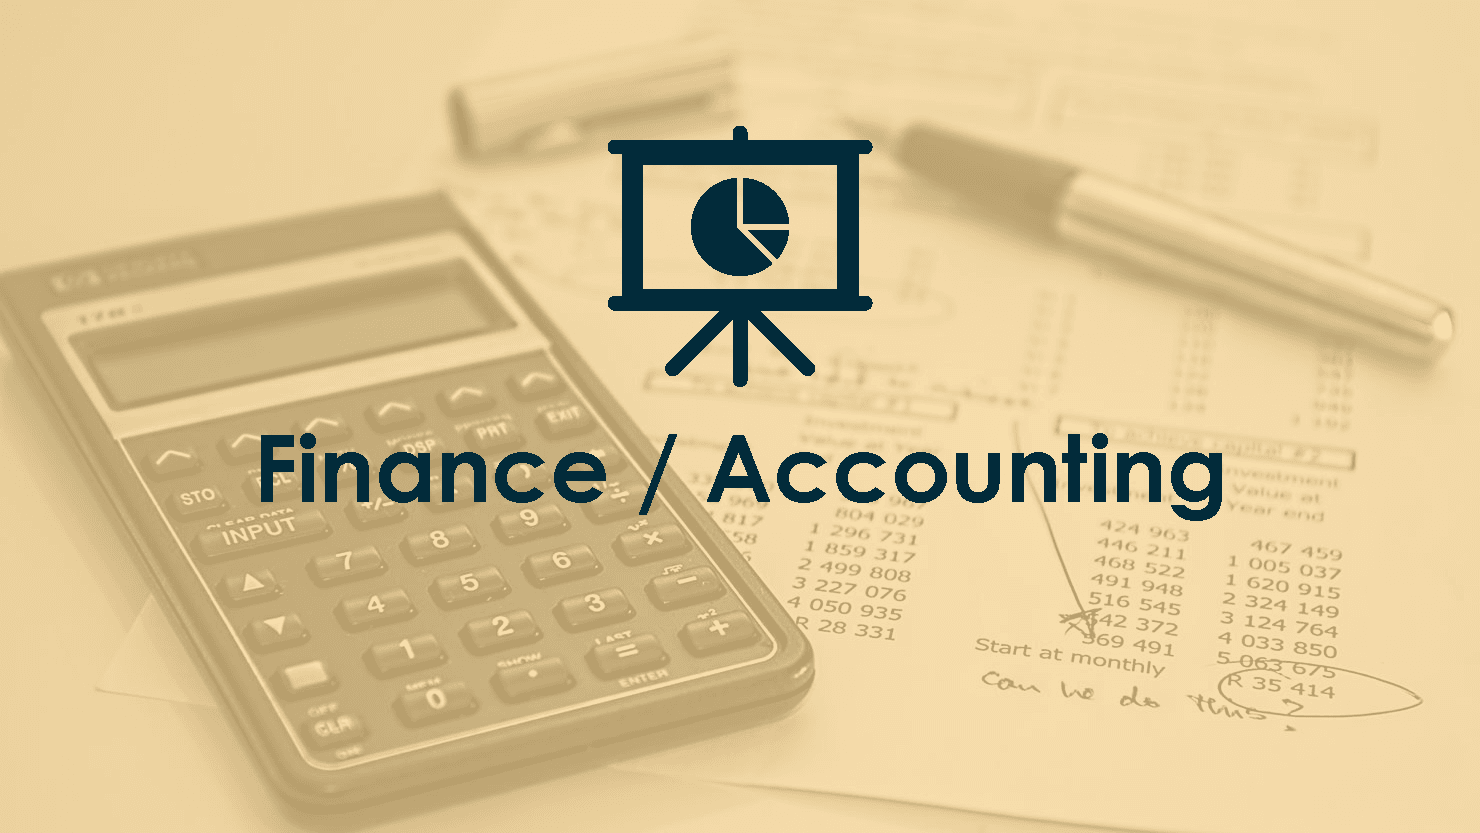 Finance / Accounting